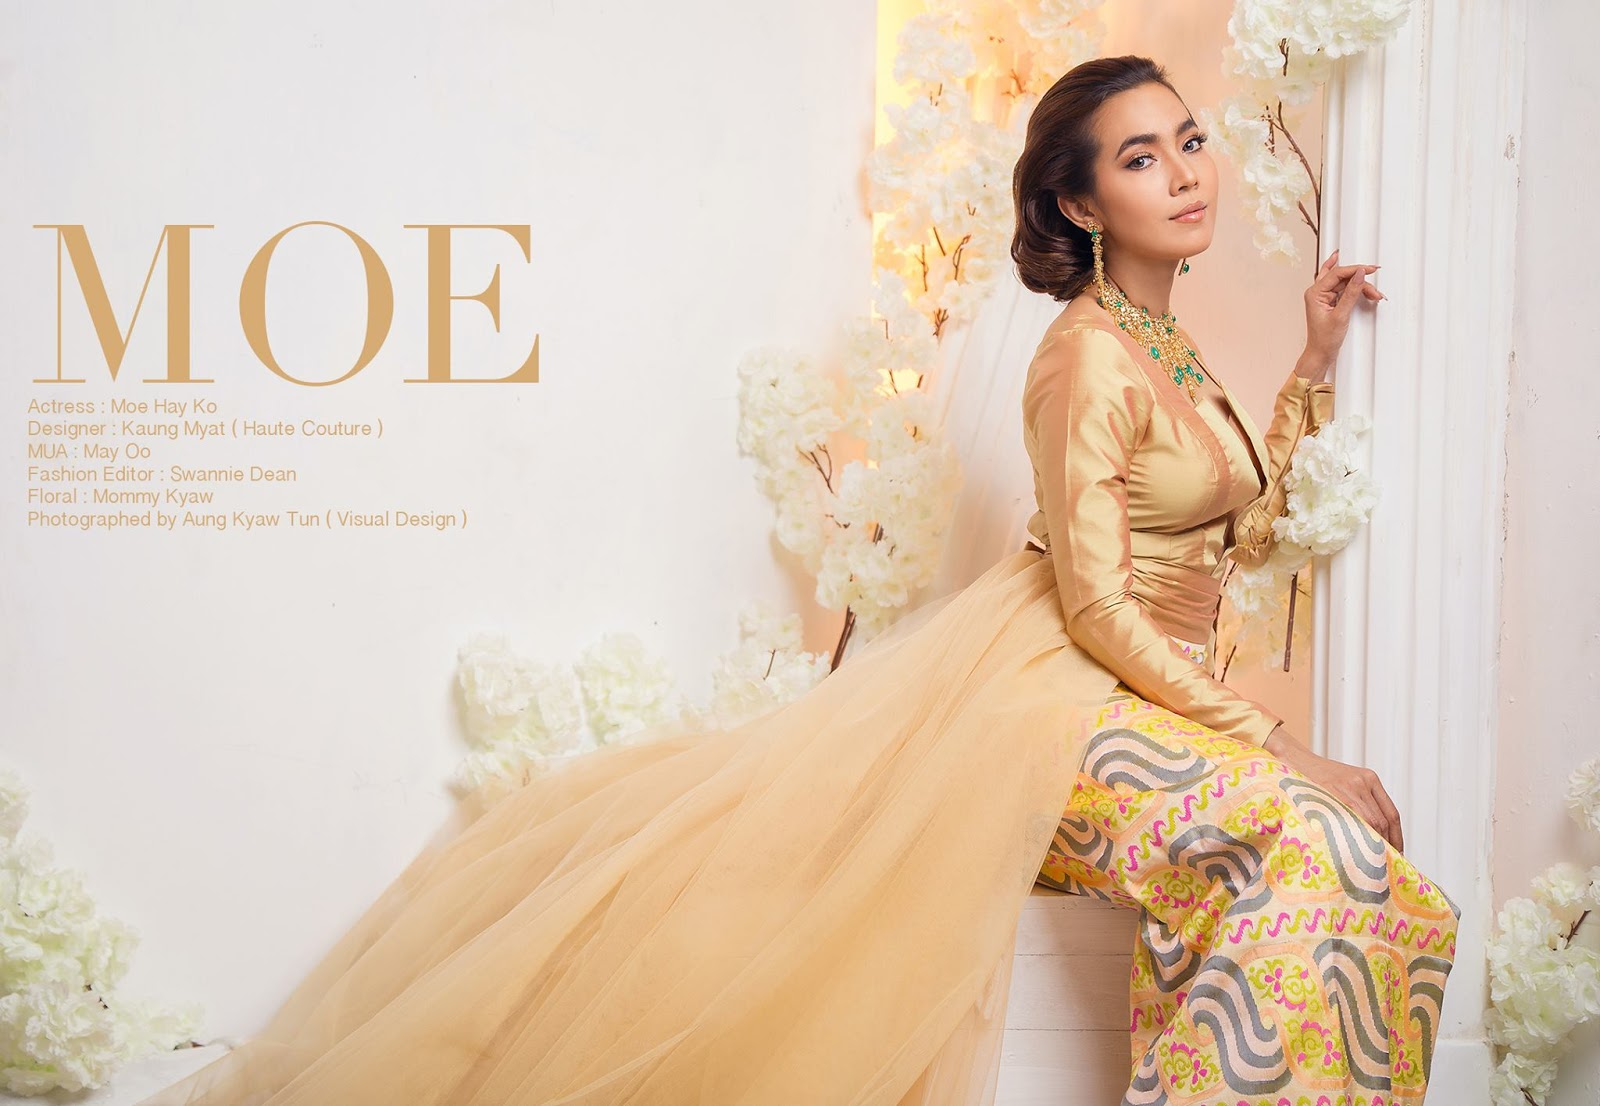 Moe Hay Ko Modern Myanmar Attire Fashion Photoshoot For People Magazine